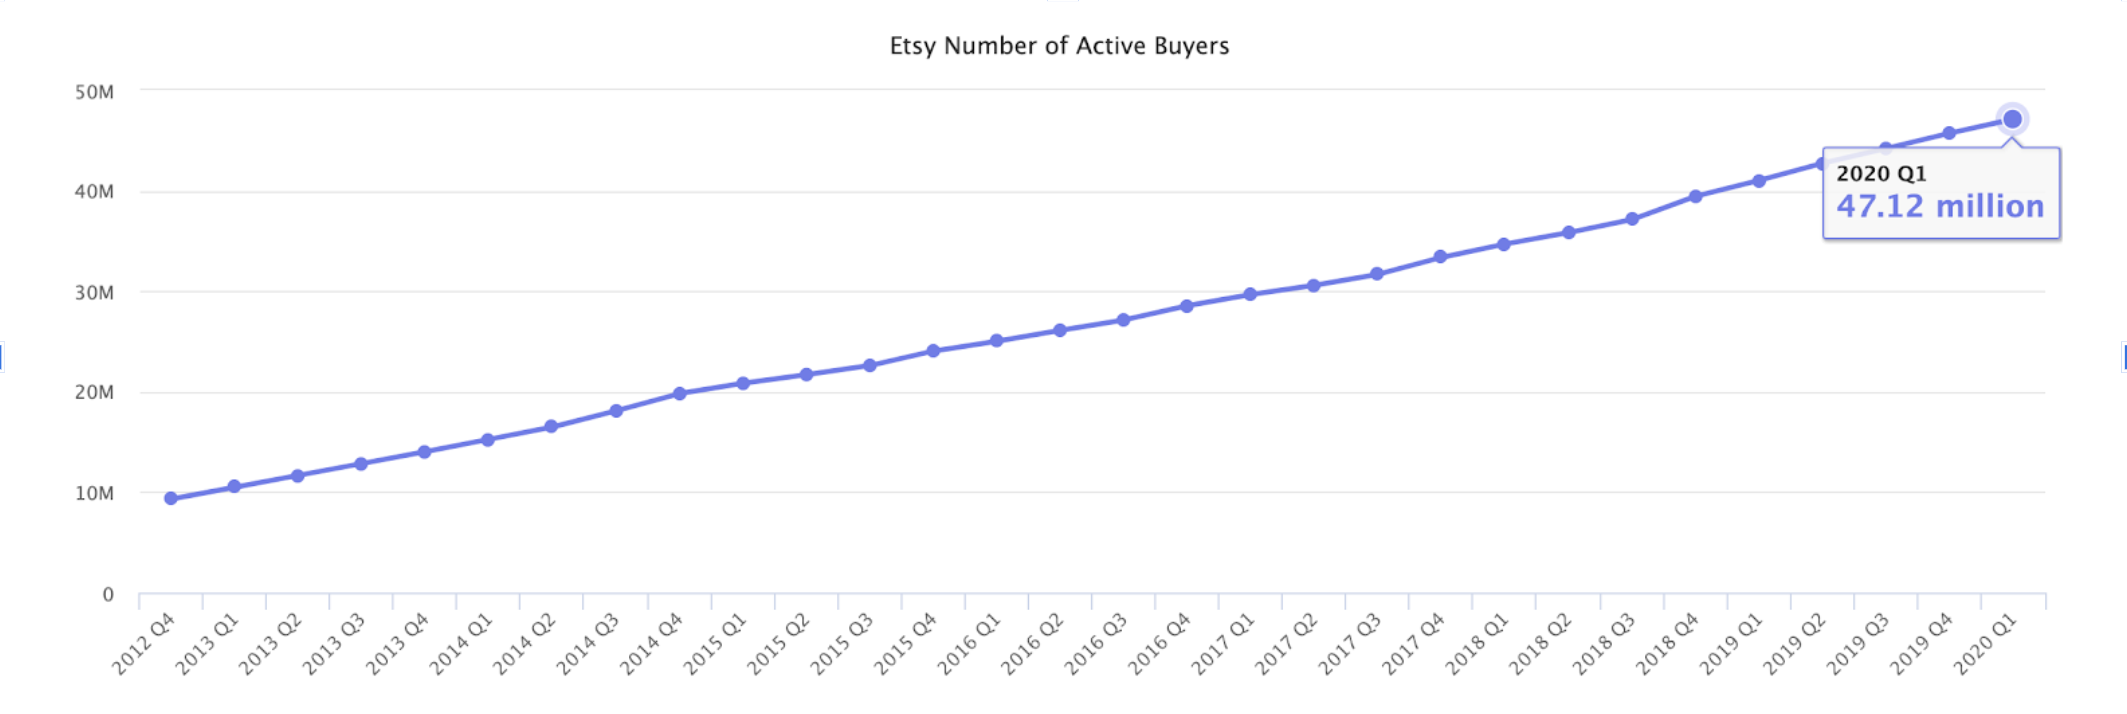 Etsy SEO number of active buyers 2020